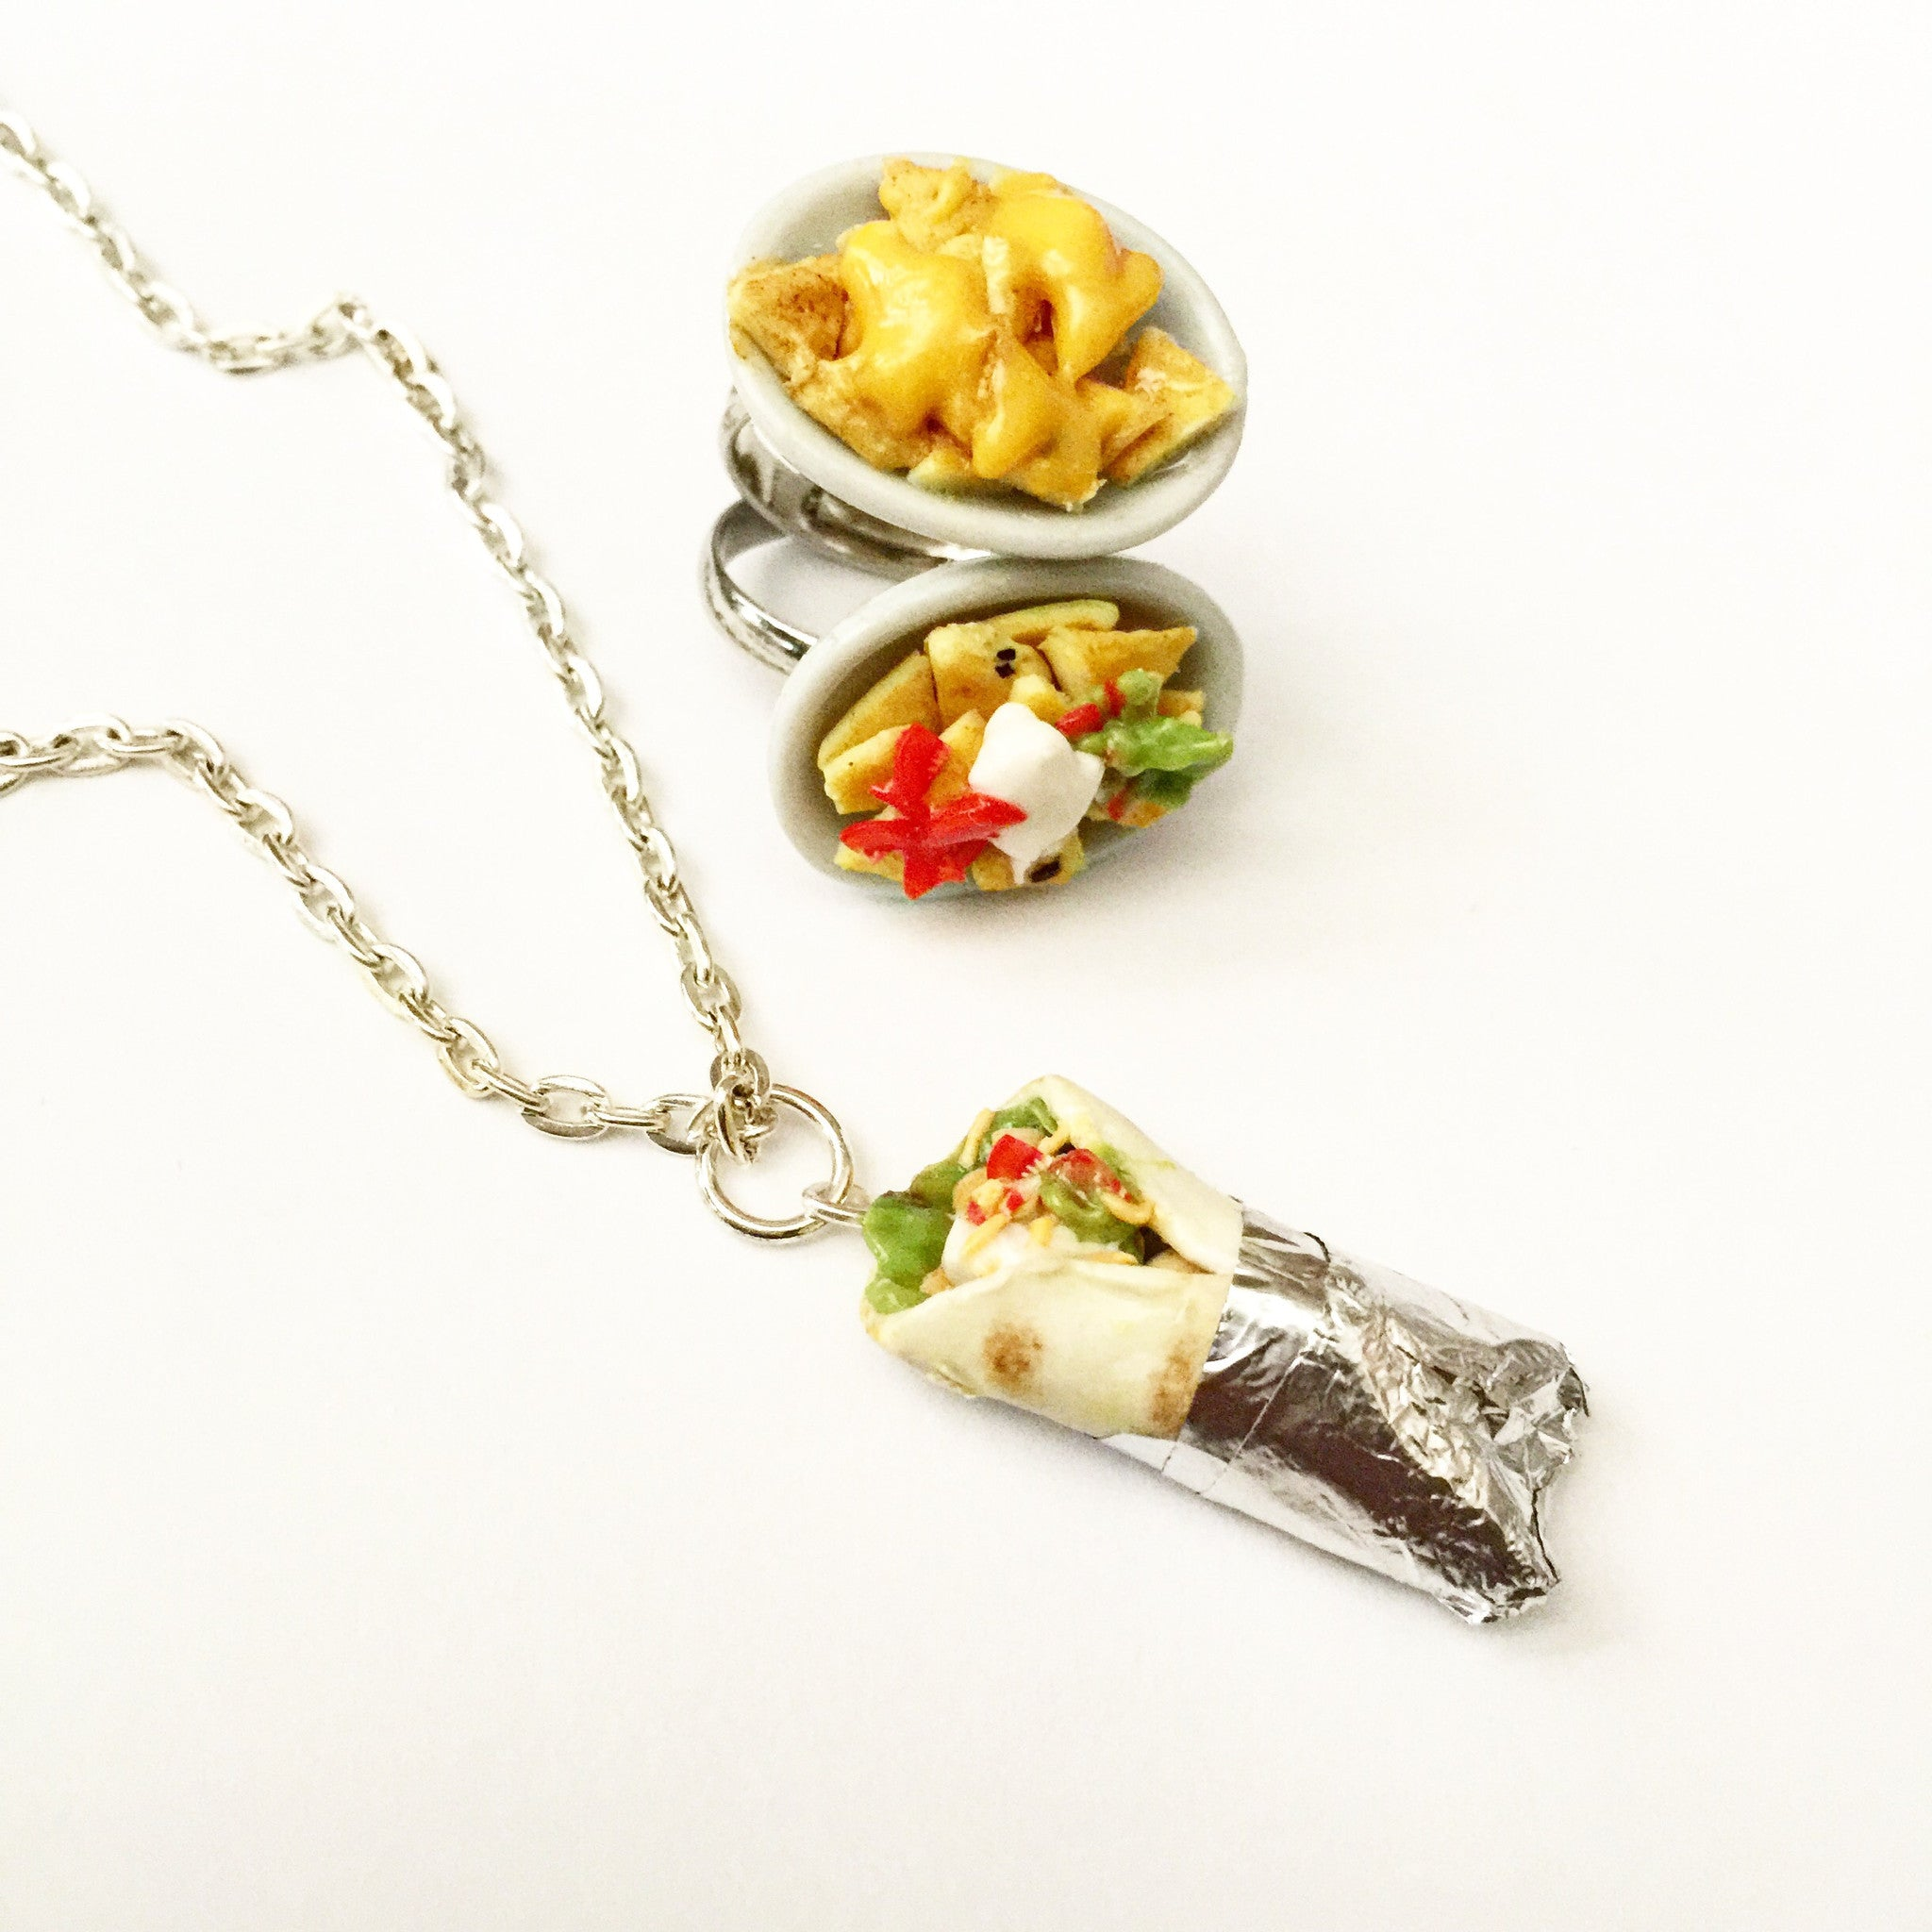 Burrito Necklace - Jillicious charms and accessories - 3